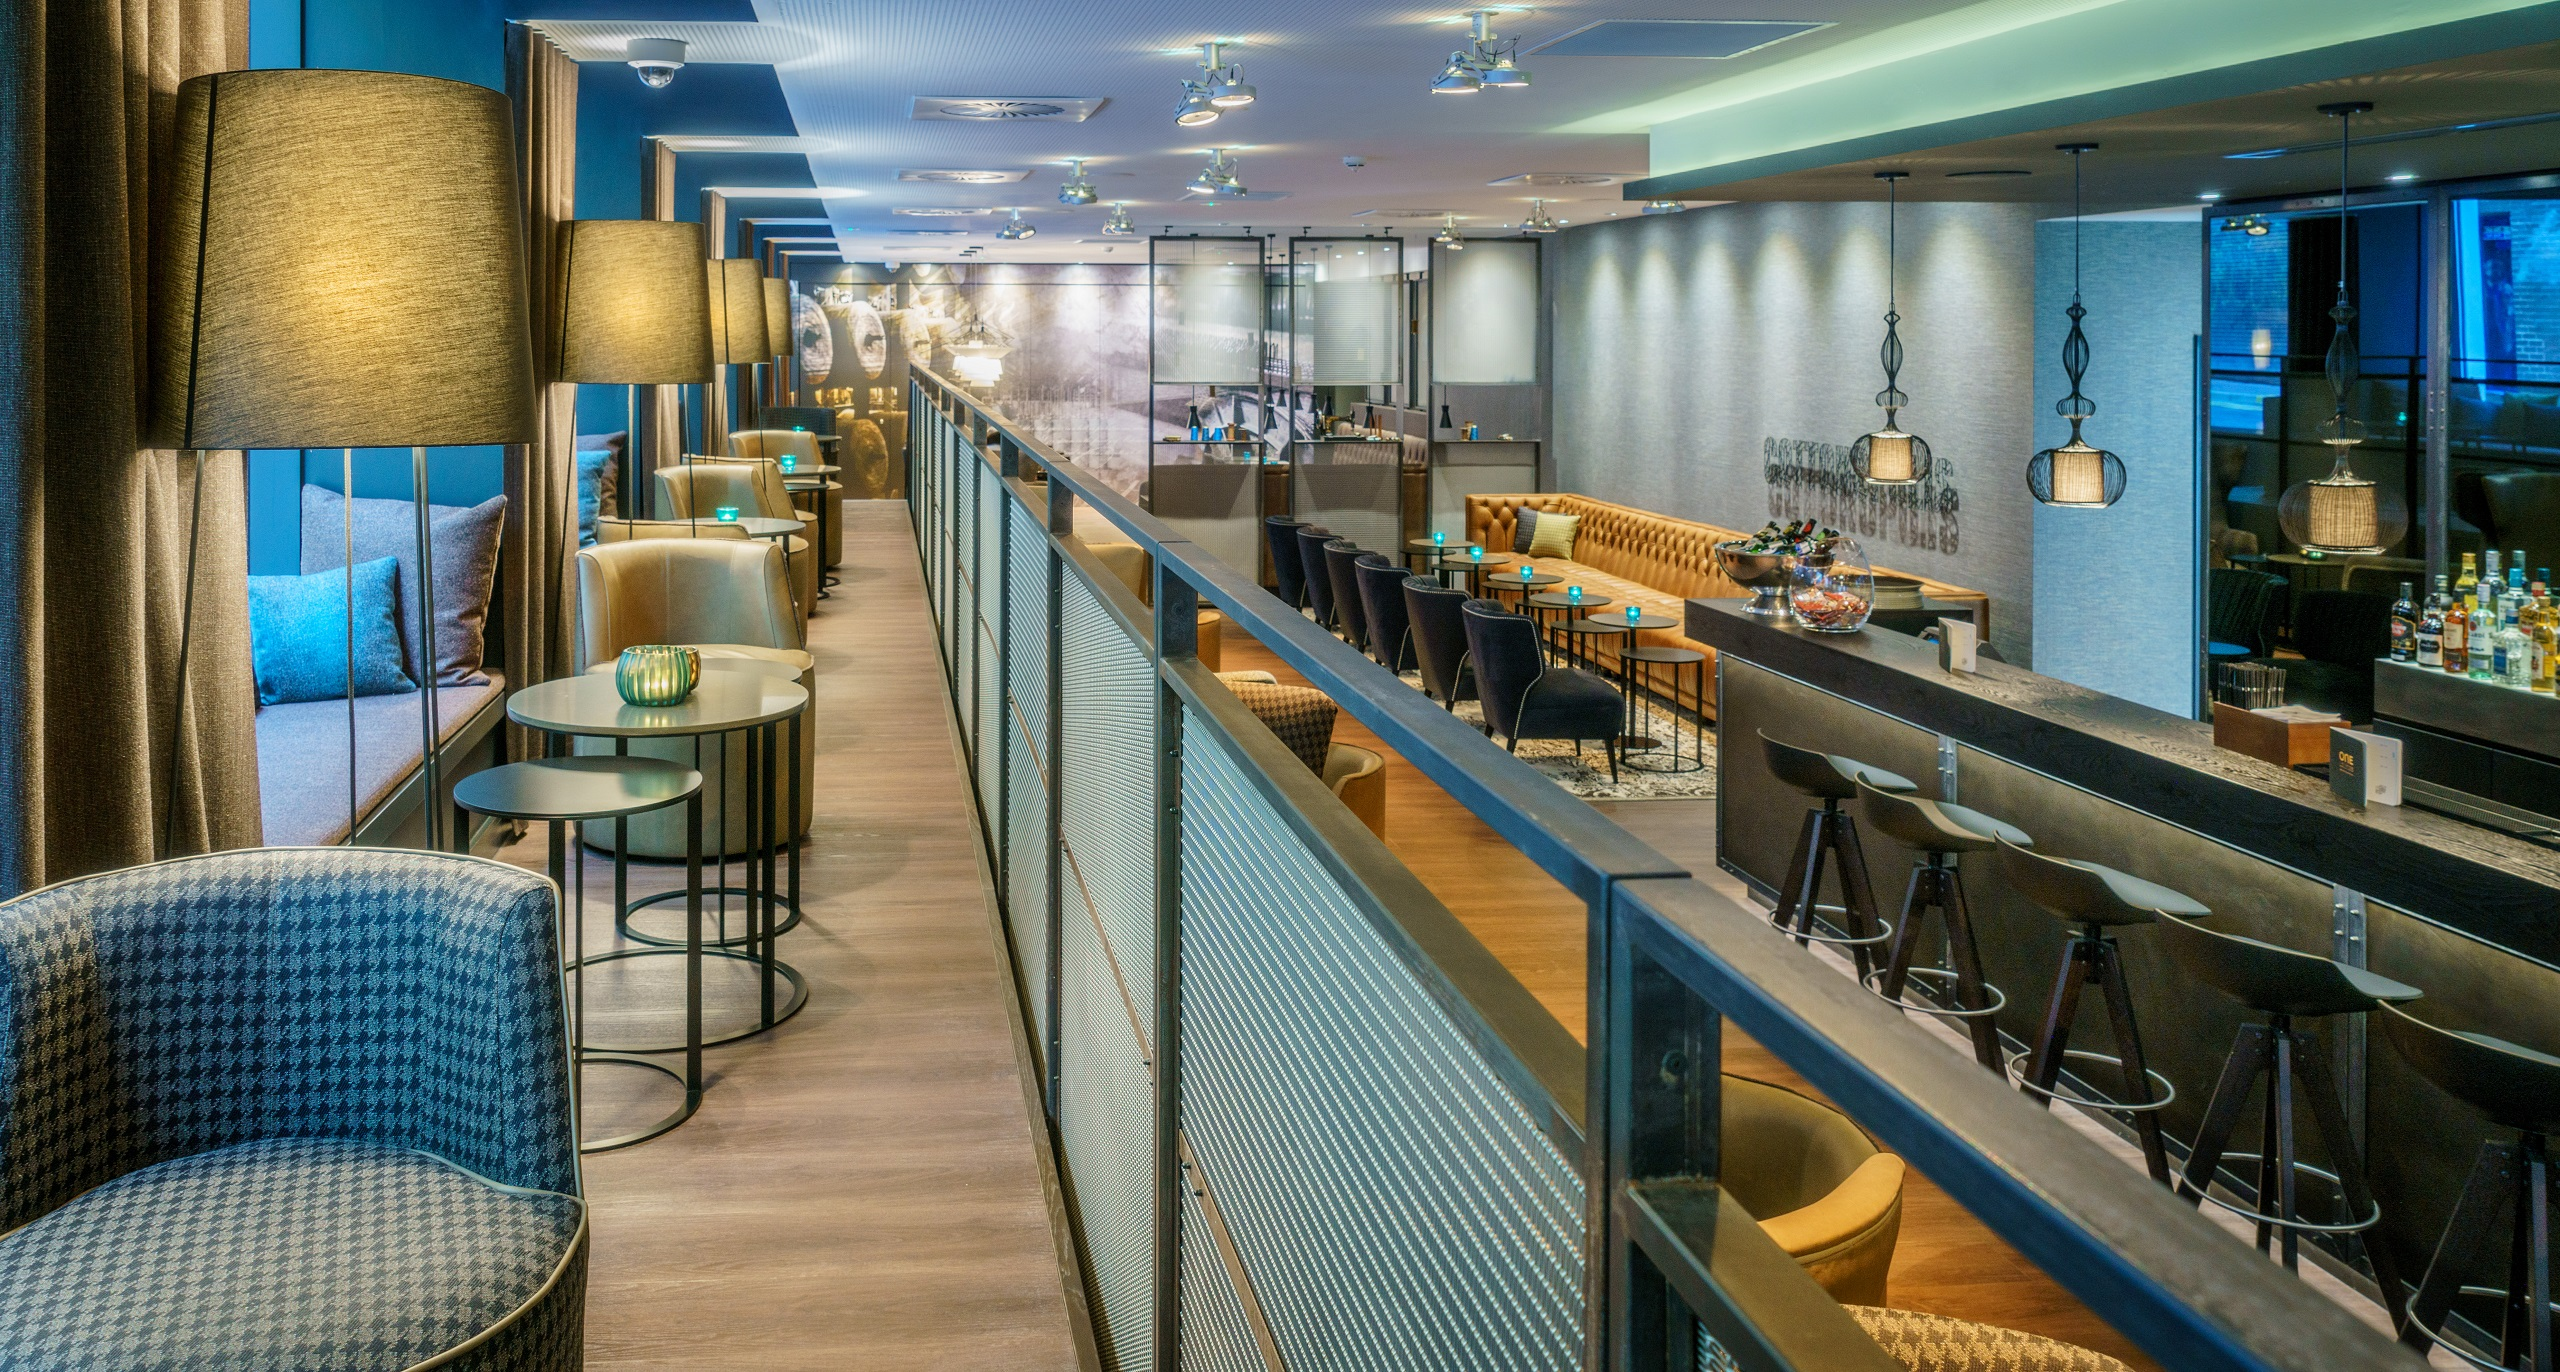 Gallery Of Cool Hotel Manchester Royal Exchange Motel One Design Hotels  Manchester Royal Exchange With Royal Mbel Kln With Manchester Mbel